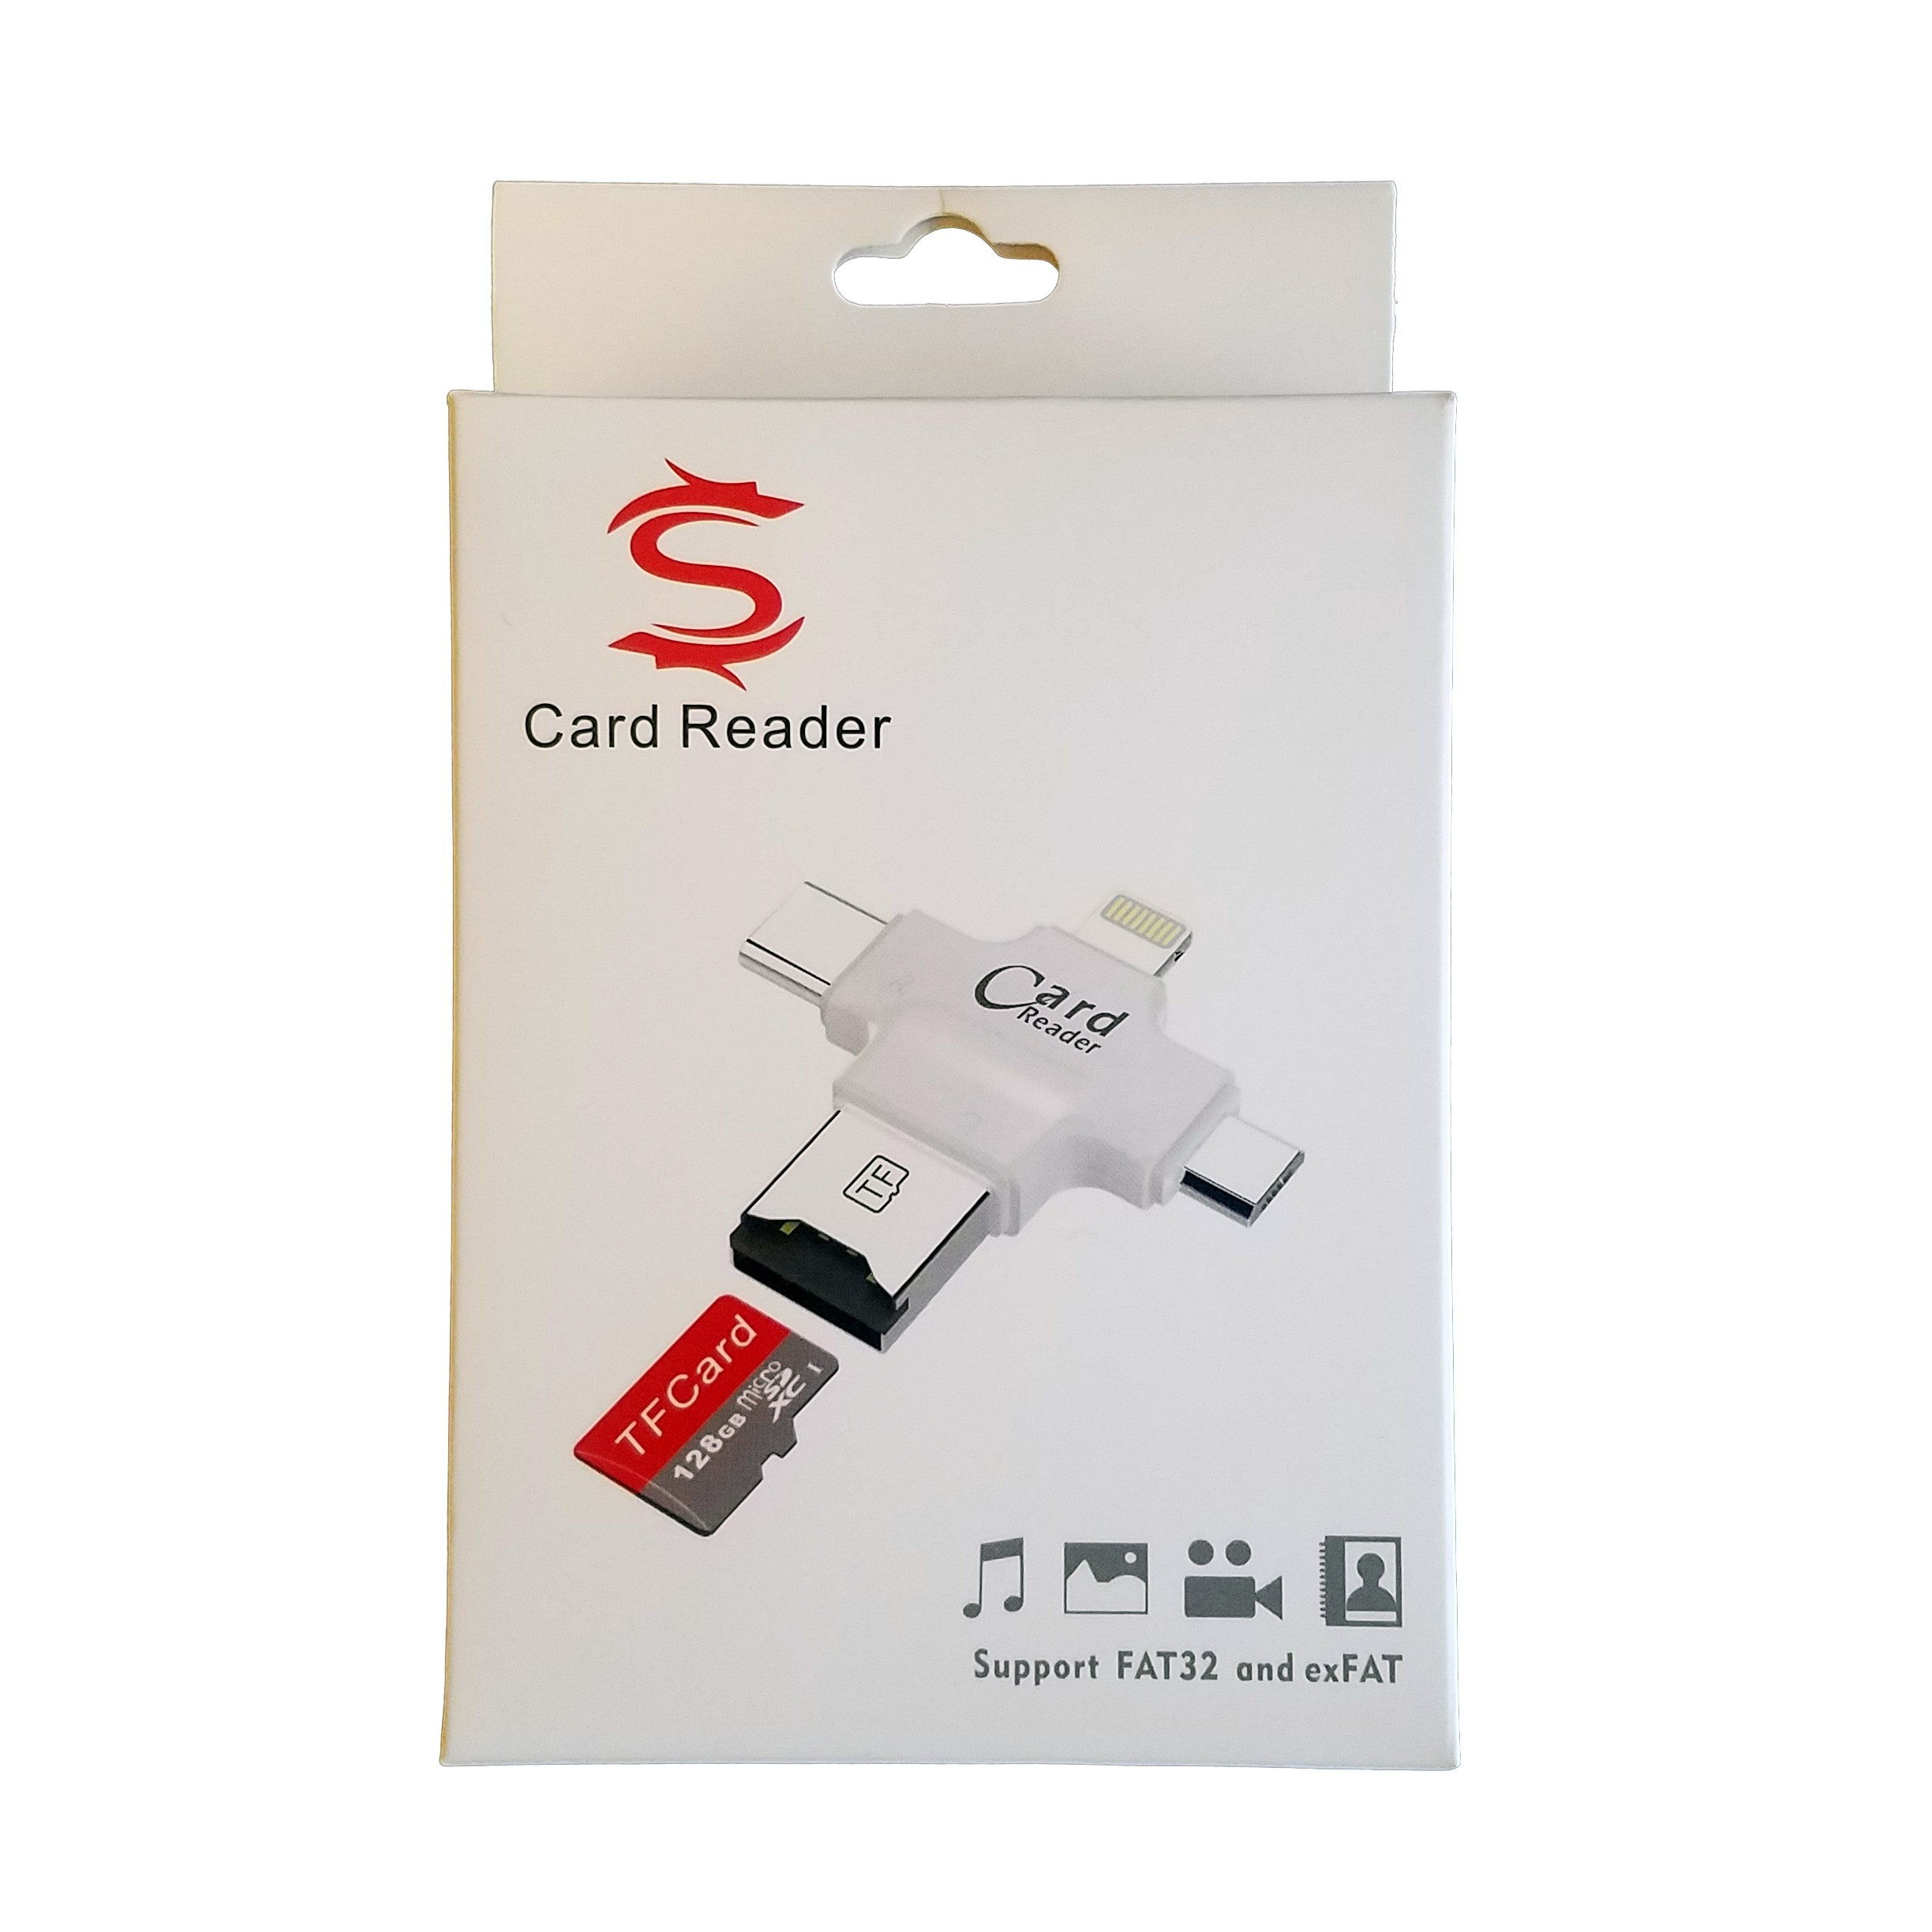 Car Remote Unlocker >> OTG MicroSD Card Reader for iPhone, Galaxy S8 Type-C and ...